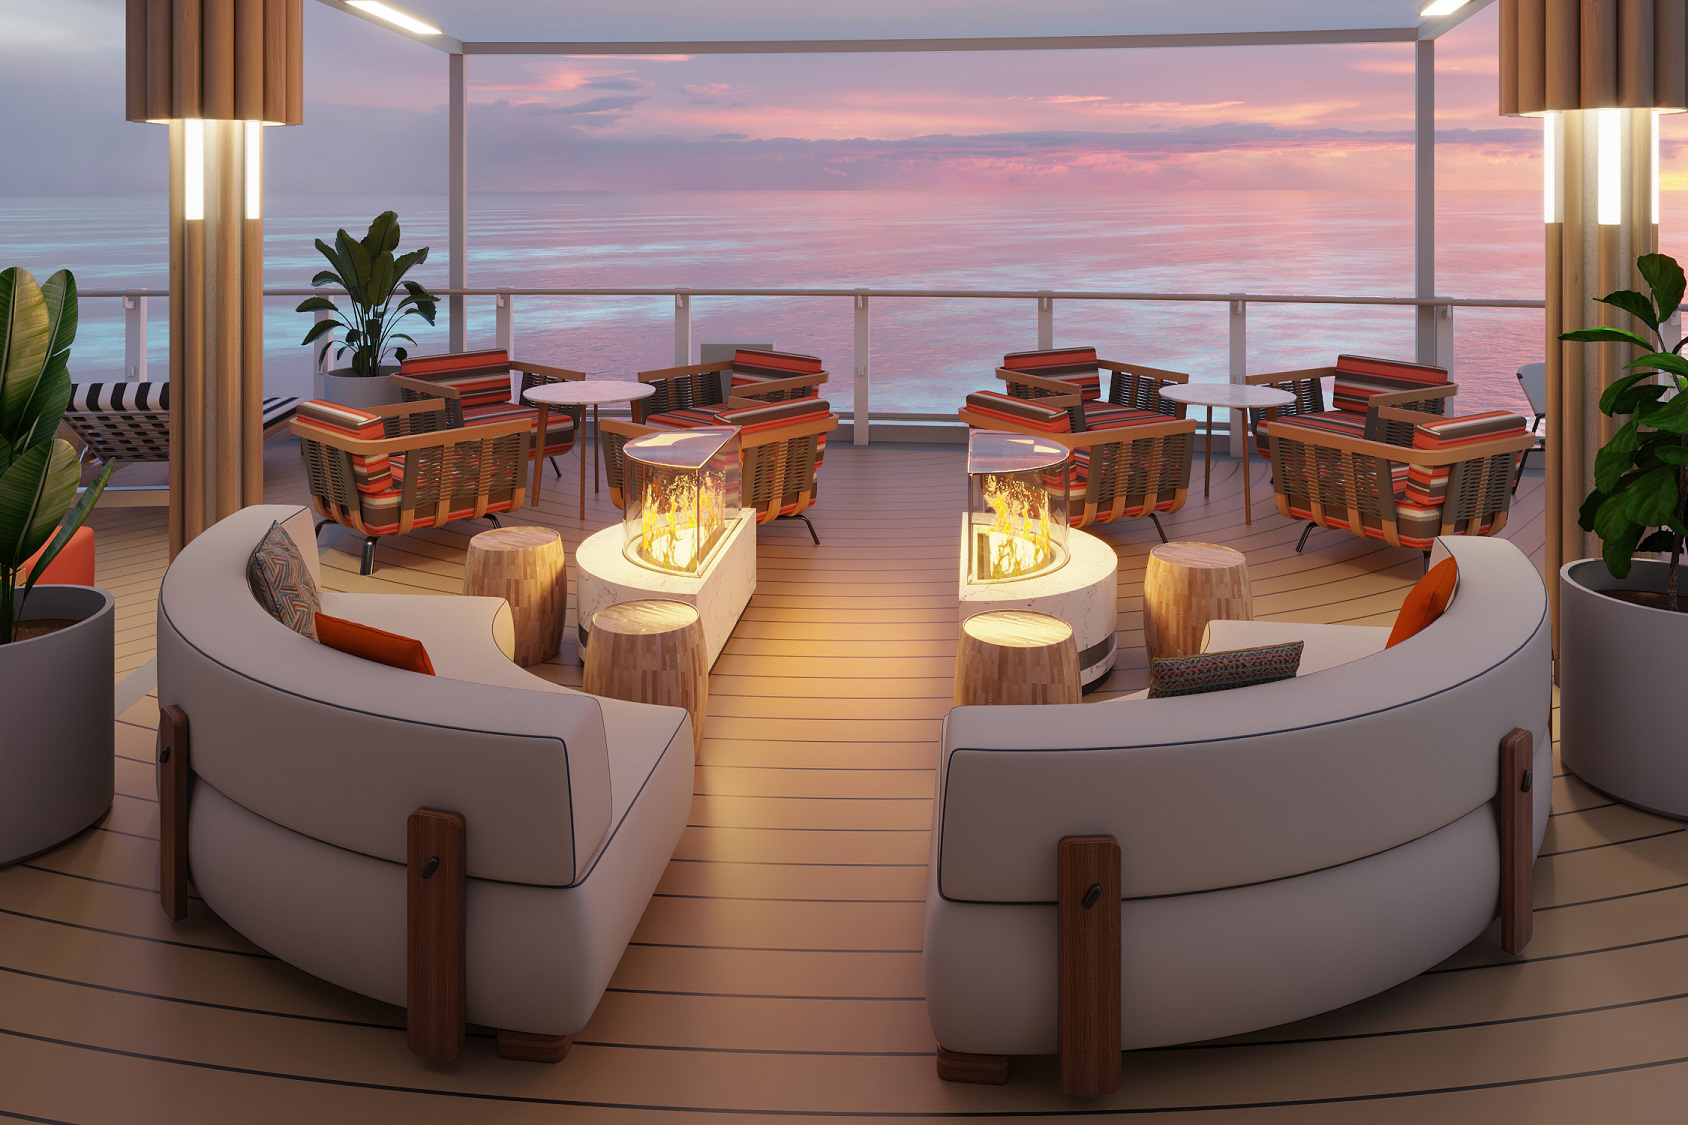 Created to elevate the guest-sensory experience on Norwegian Prima, Indulge Food Hall offers visitors diverse menu items from a variety of culinary venues as well as a mix of indoor and outdoor seating. Guests can enjoy the atmospheric firepit for a place of retreat and quality time.